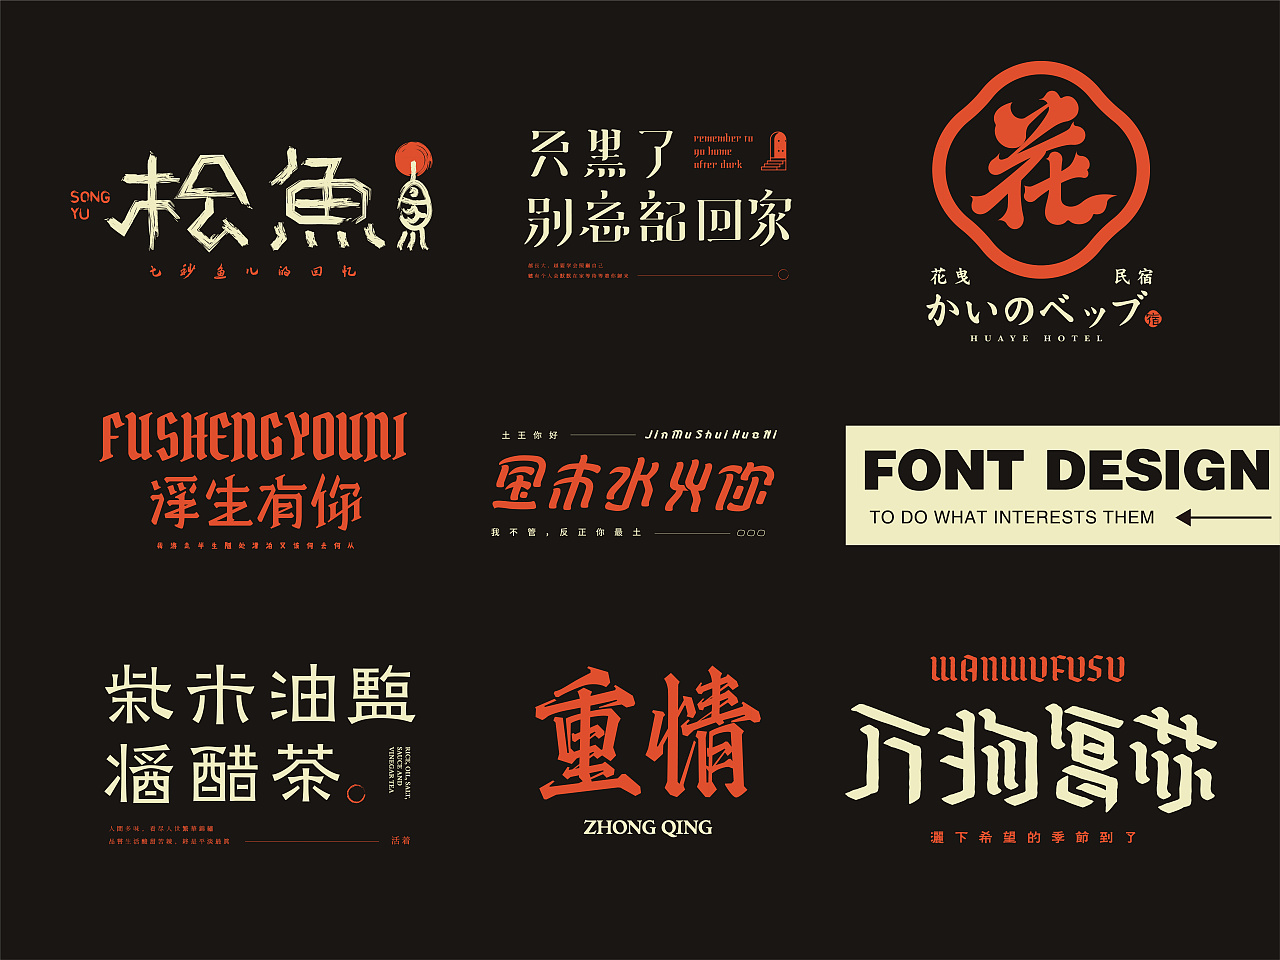 Chinese Creative Font Design-Rose in February and spring breeze in March, may every day be sunny.